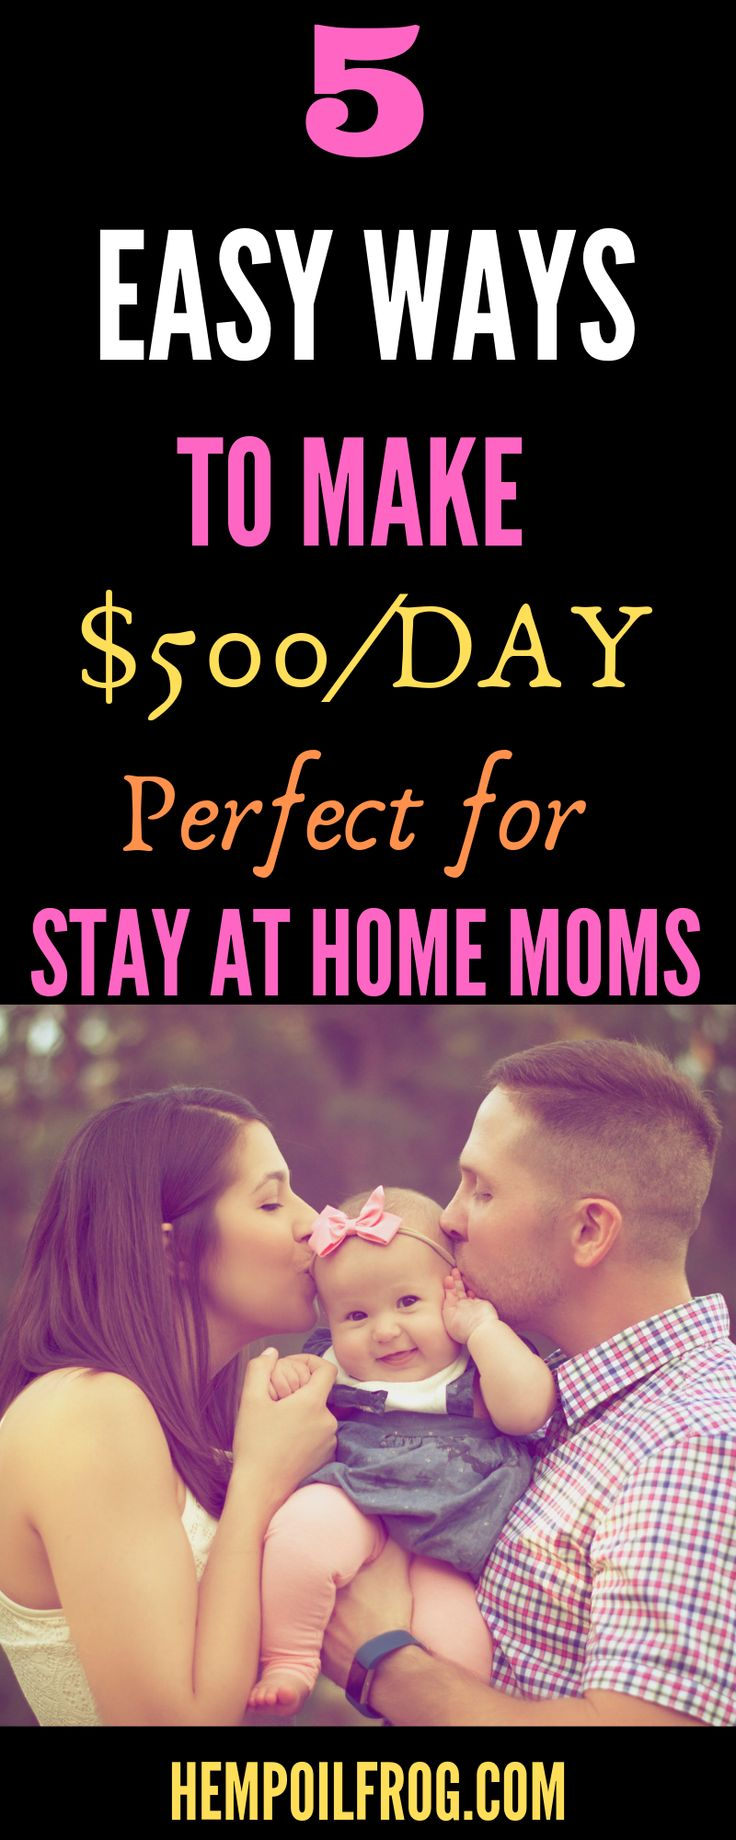 5 Easy Ways To Make Money for At Home Staying Moms